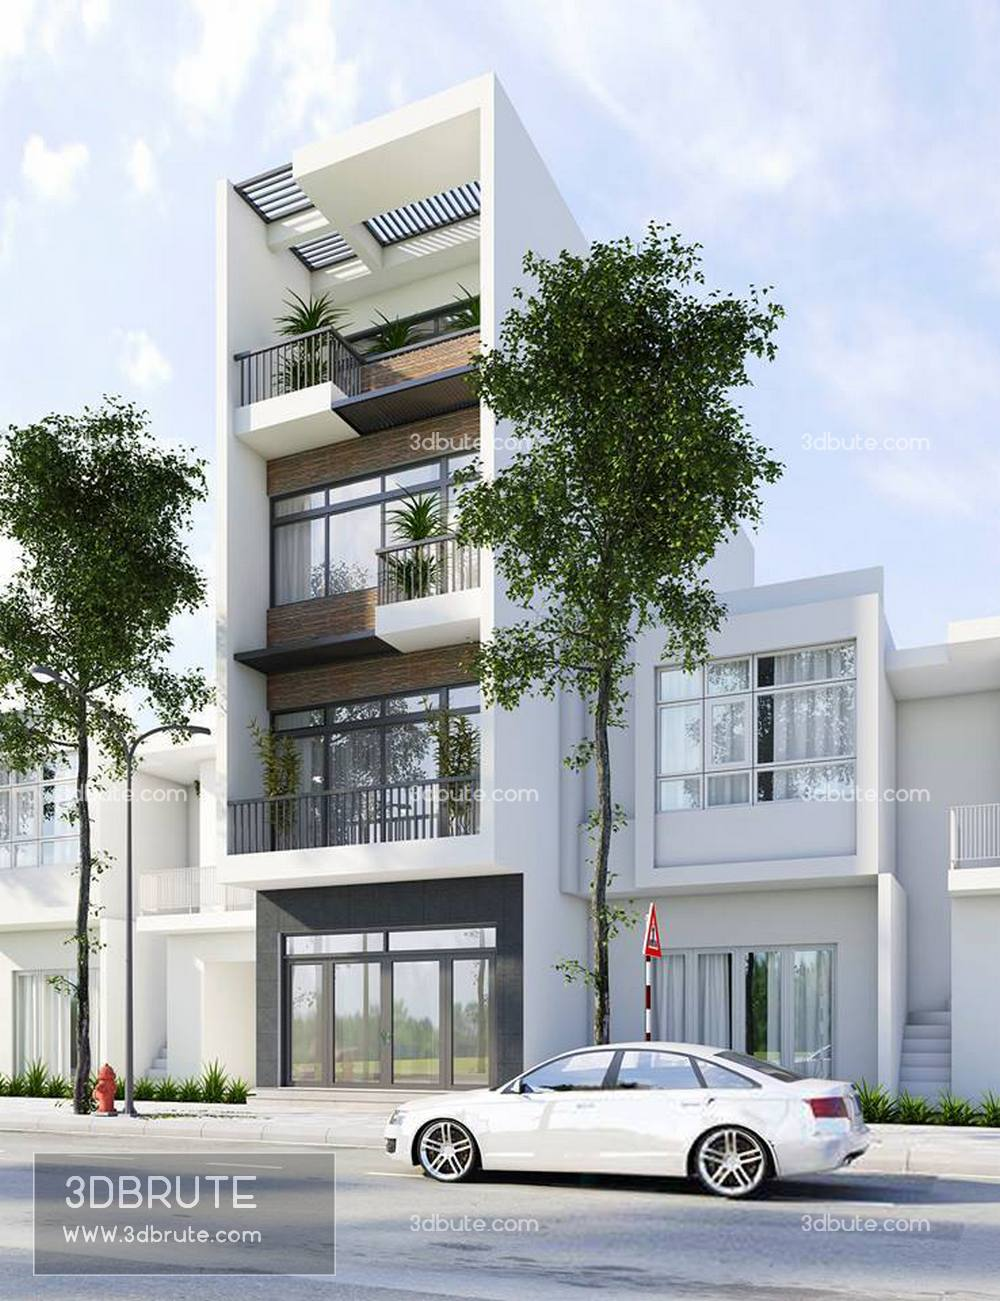 Exterior download free 3dmodel vray 3dbrute